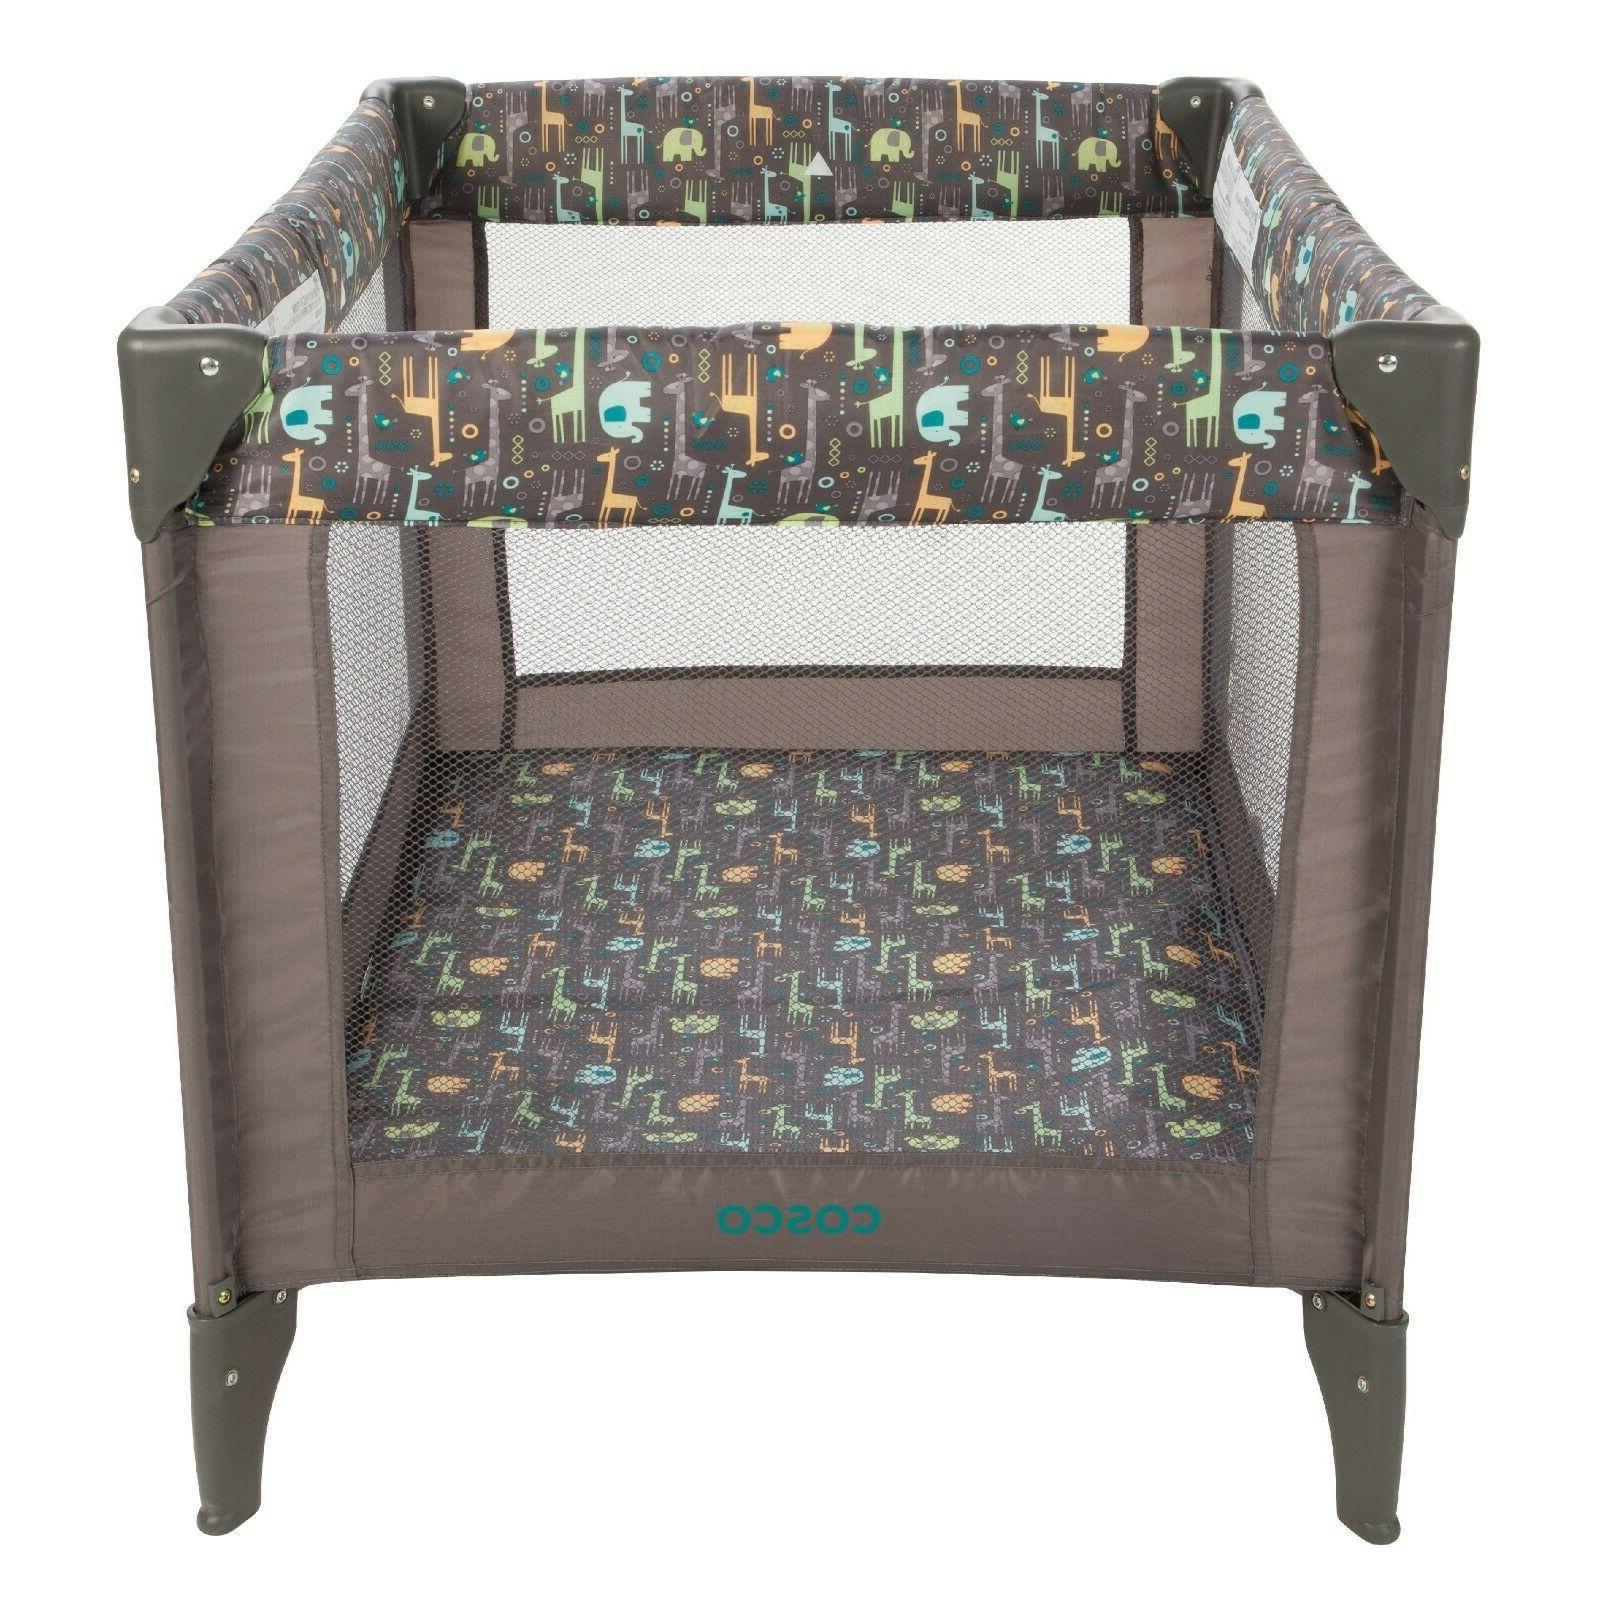 Cosco & Toddler Kids Portable Safety Fence